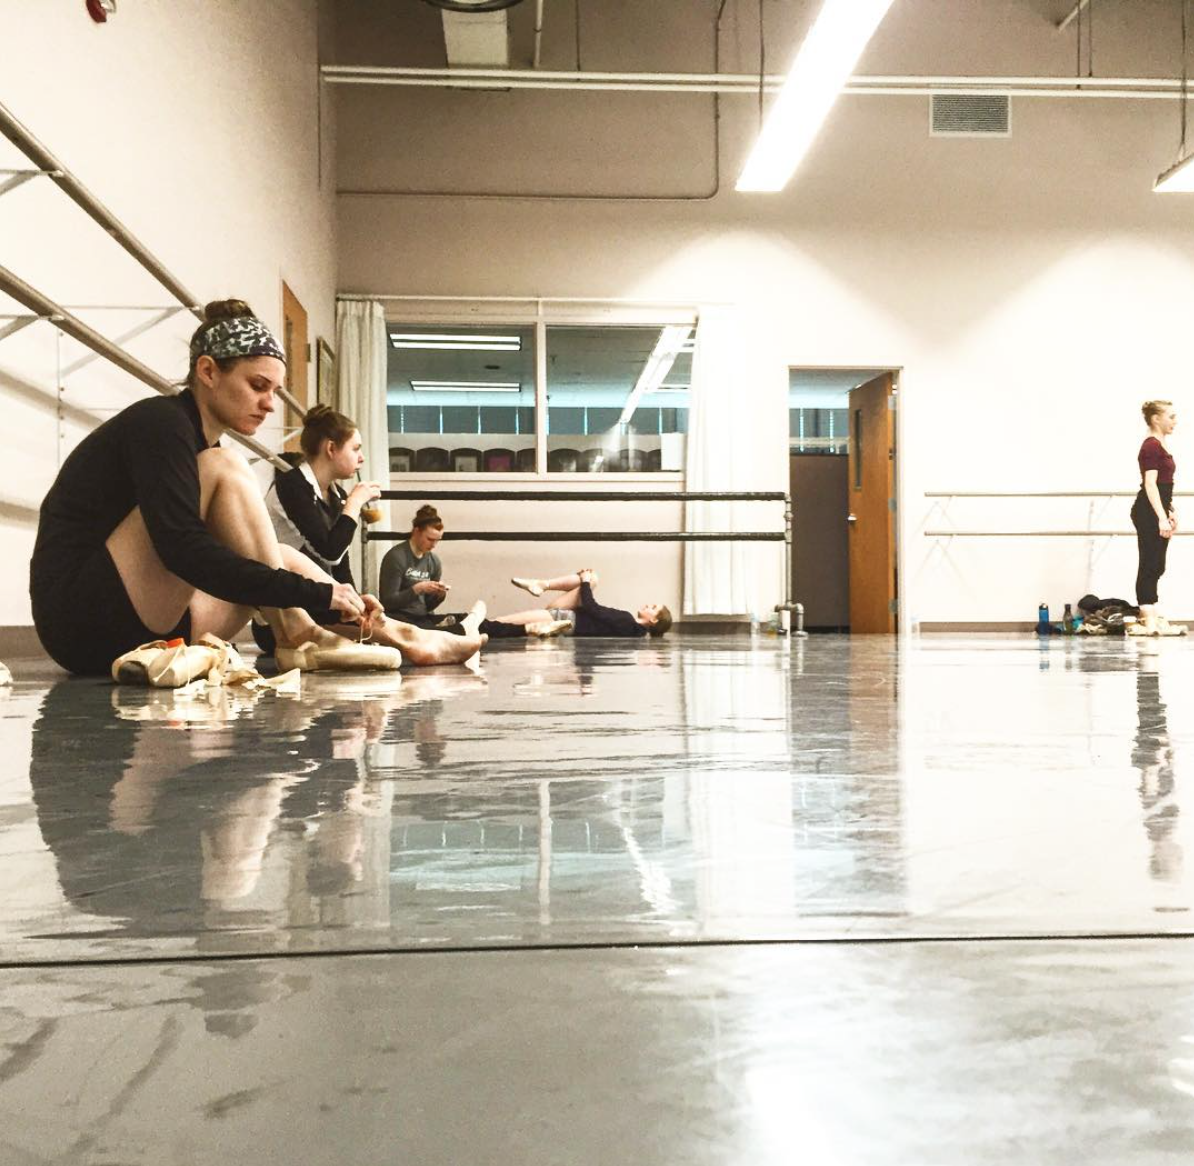 Class and rehearsals at the studios of Ballet Society of Colorado Springs.